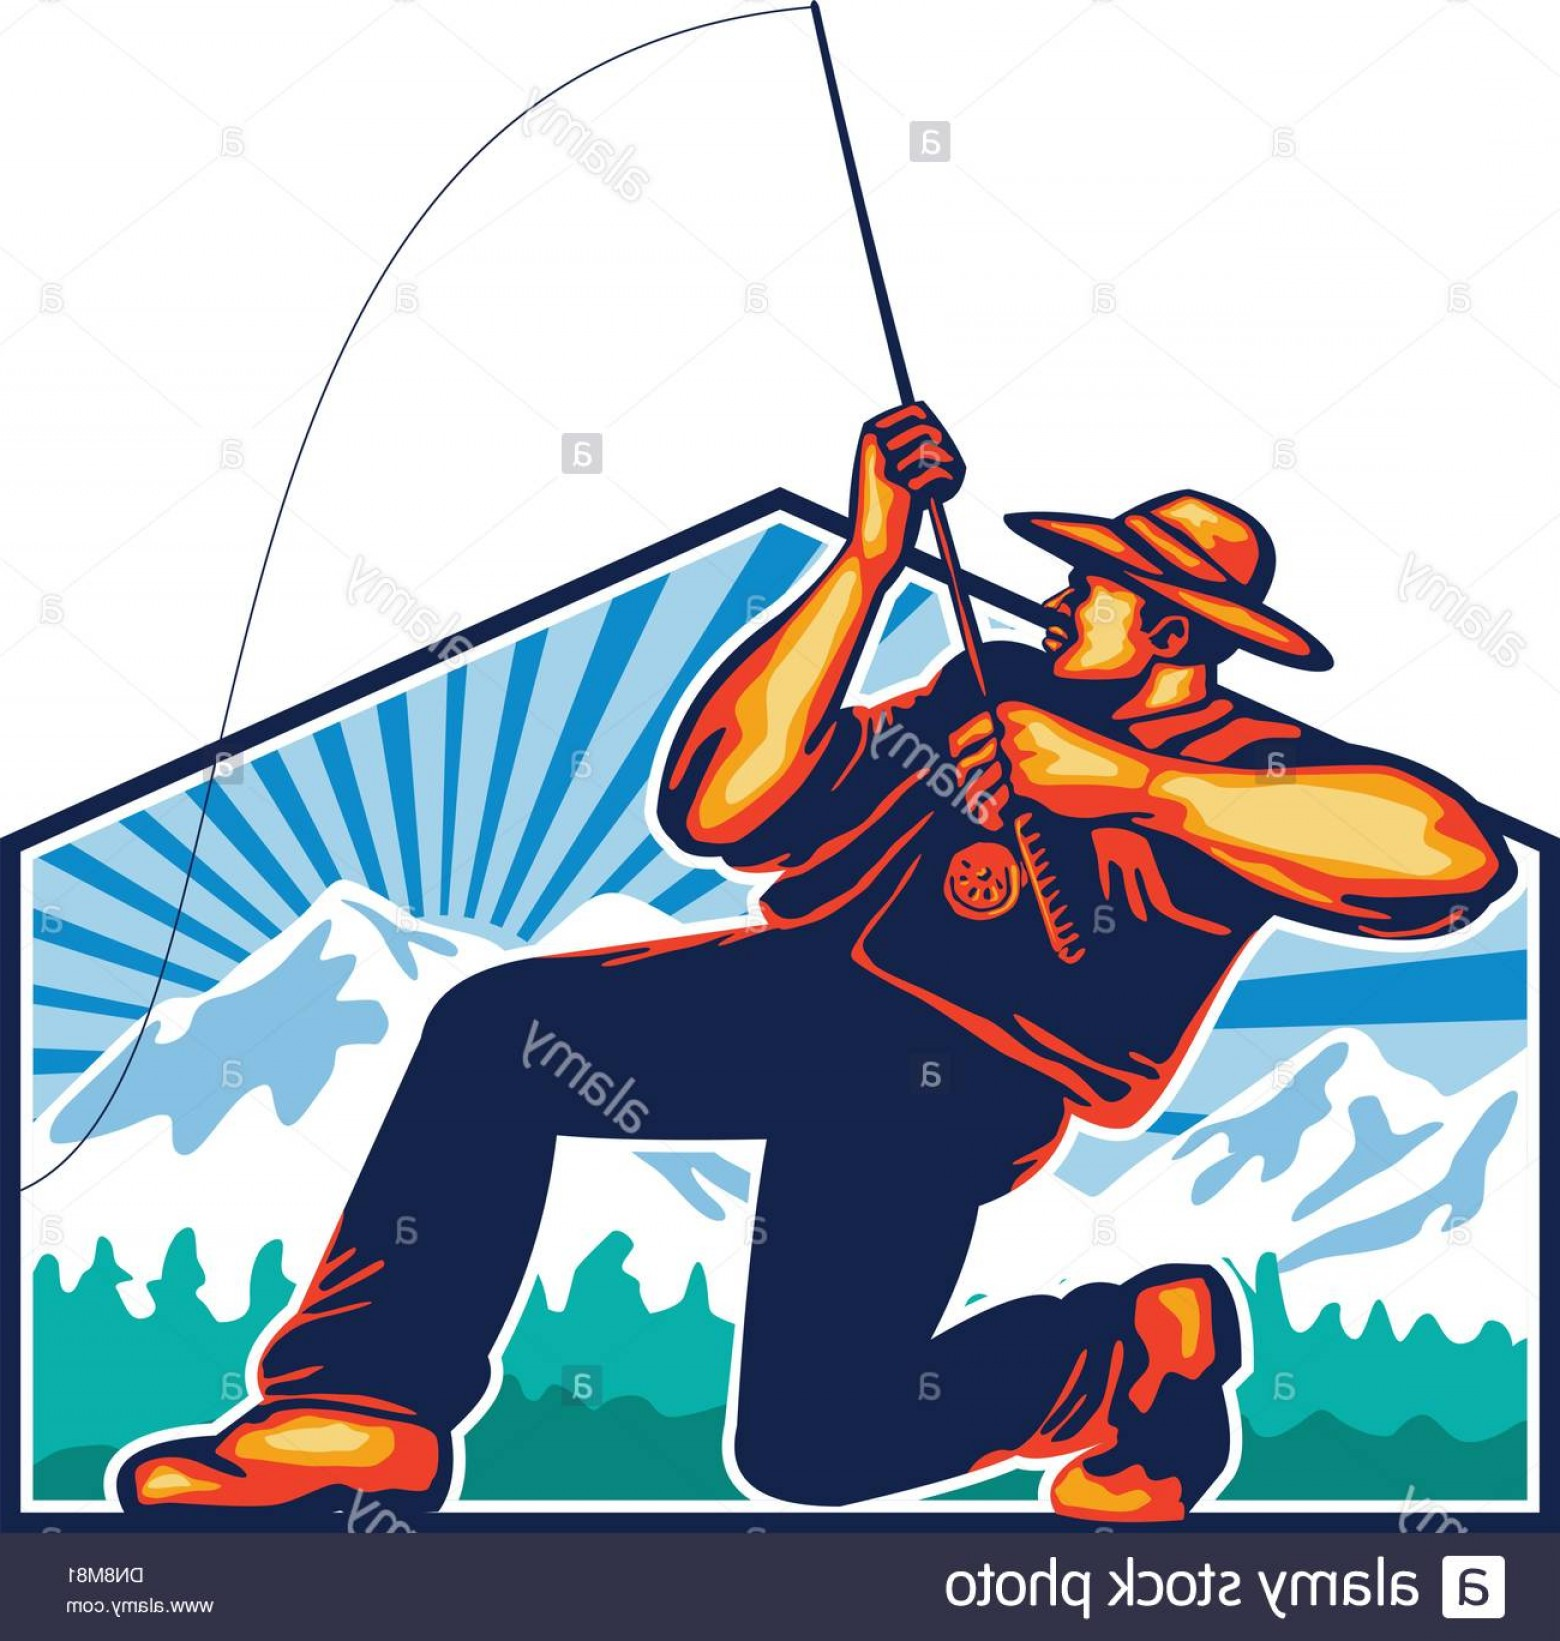 Detailed Vector Art Fly Fisherman: Fly Fisherman Reeling Fishing Rod Retro Image